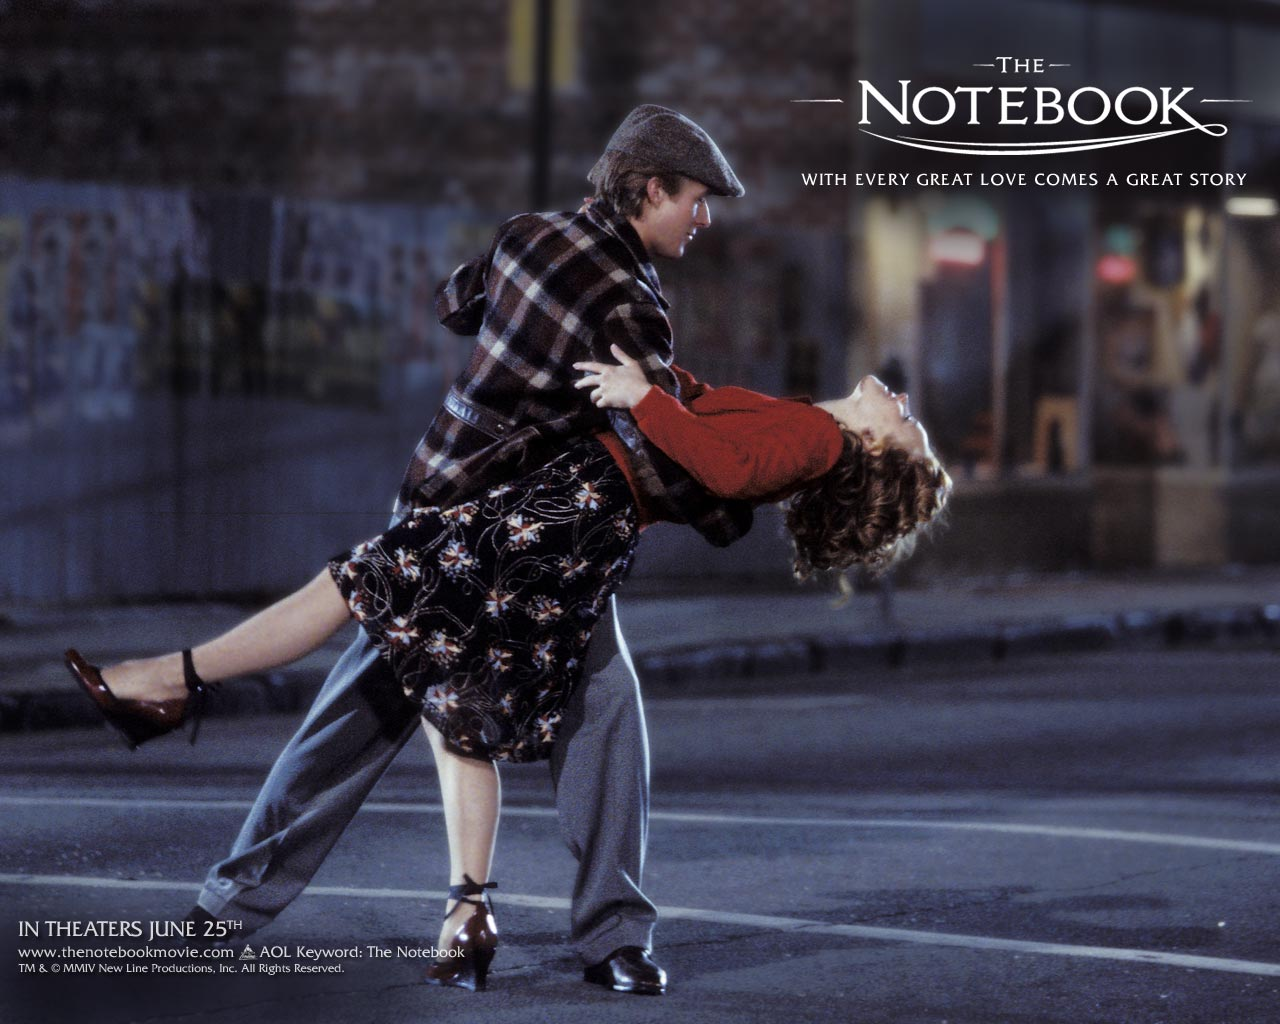 http://4.bp.blogspot.com/-KIloCGnMkPs/UT9Ng1ZrCxI/AAAAAAAAHFA/j3zzthB1DQc/s1600/The-Notebook-Movie-Wallpaper.jpg